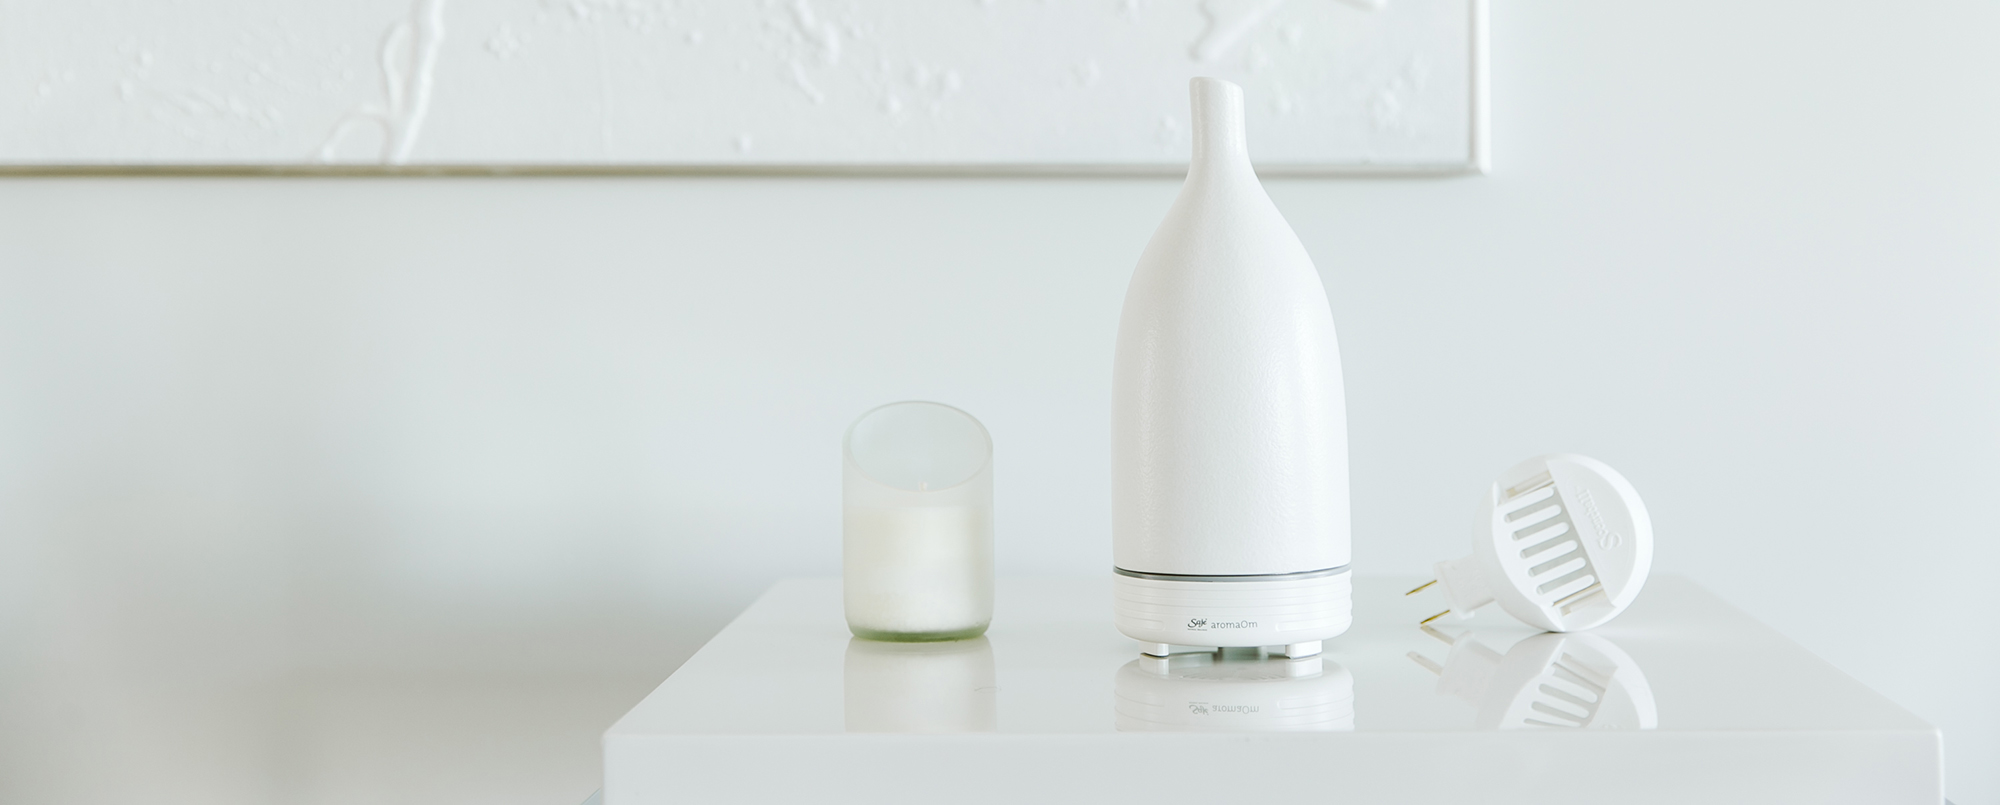 Why use an ultrasonic diffuser?